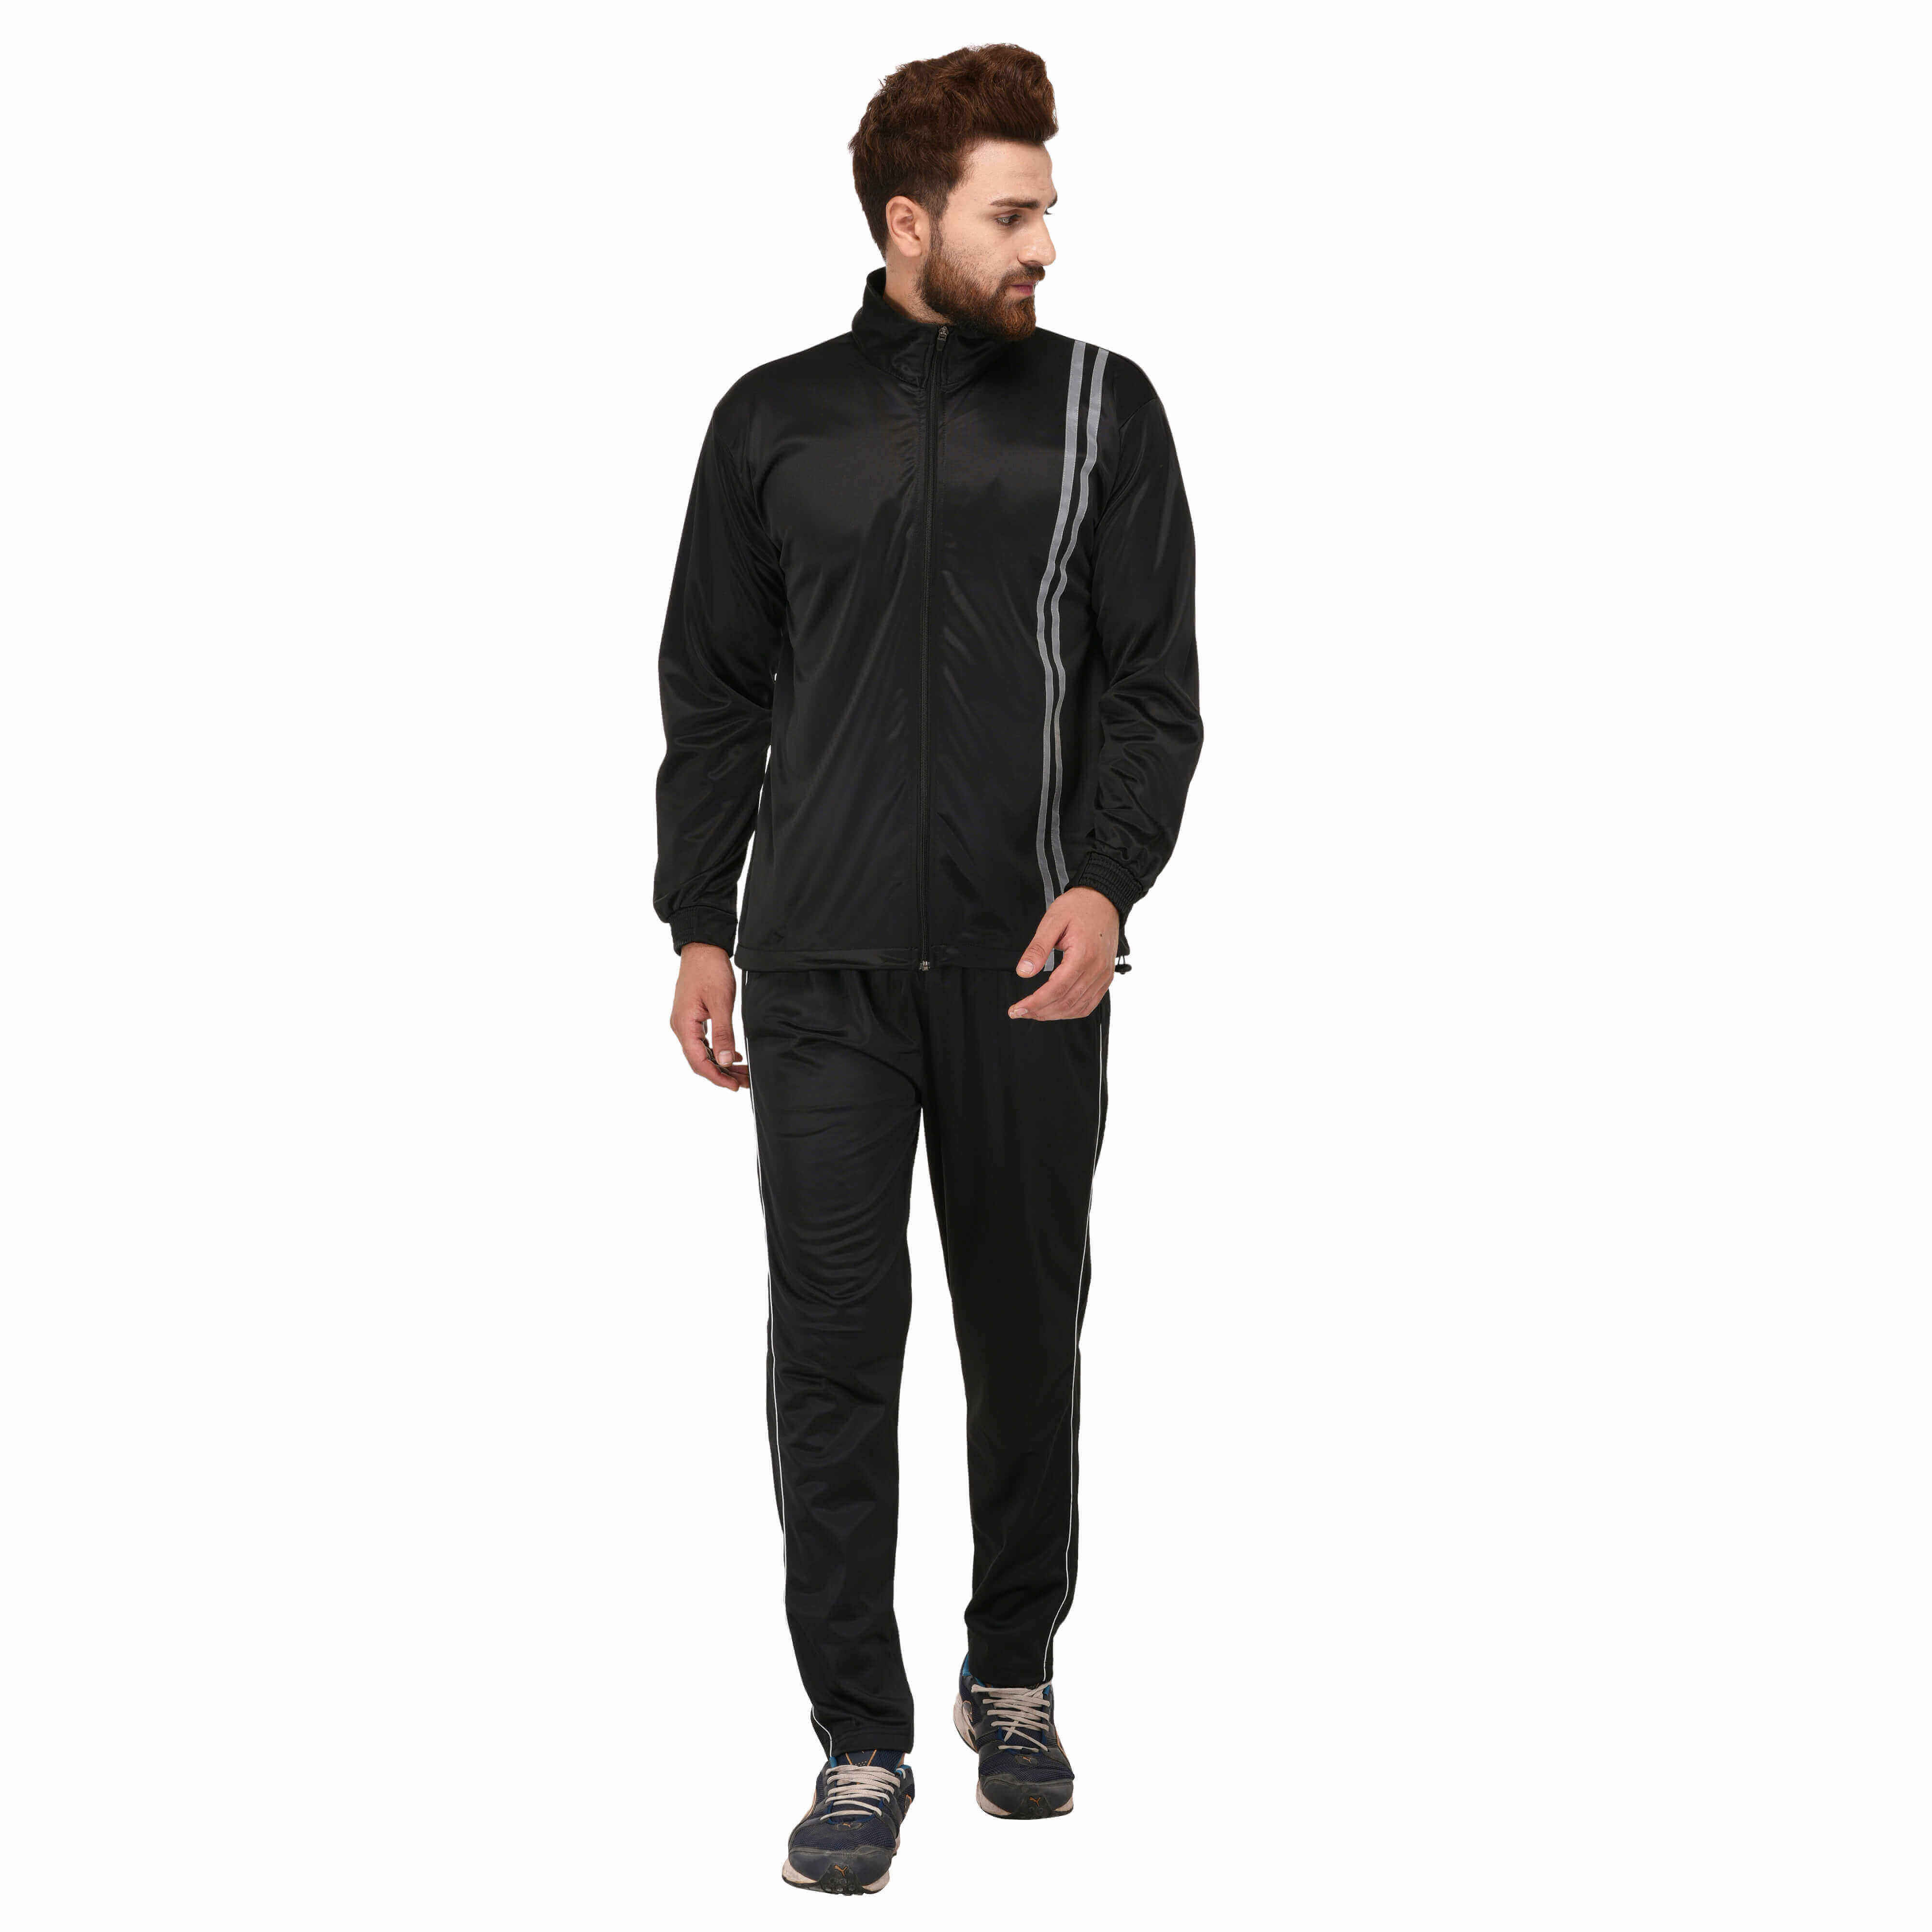 Mens Tracksuit Set Manufacturers in Noida